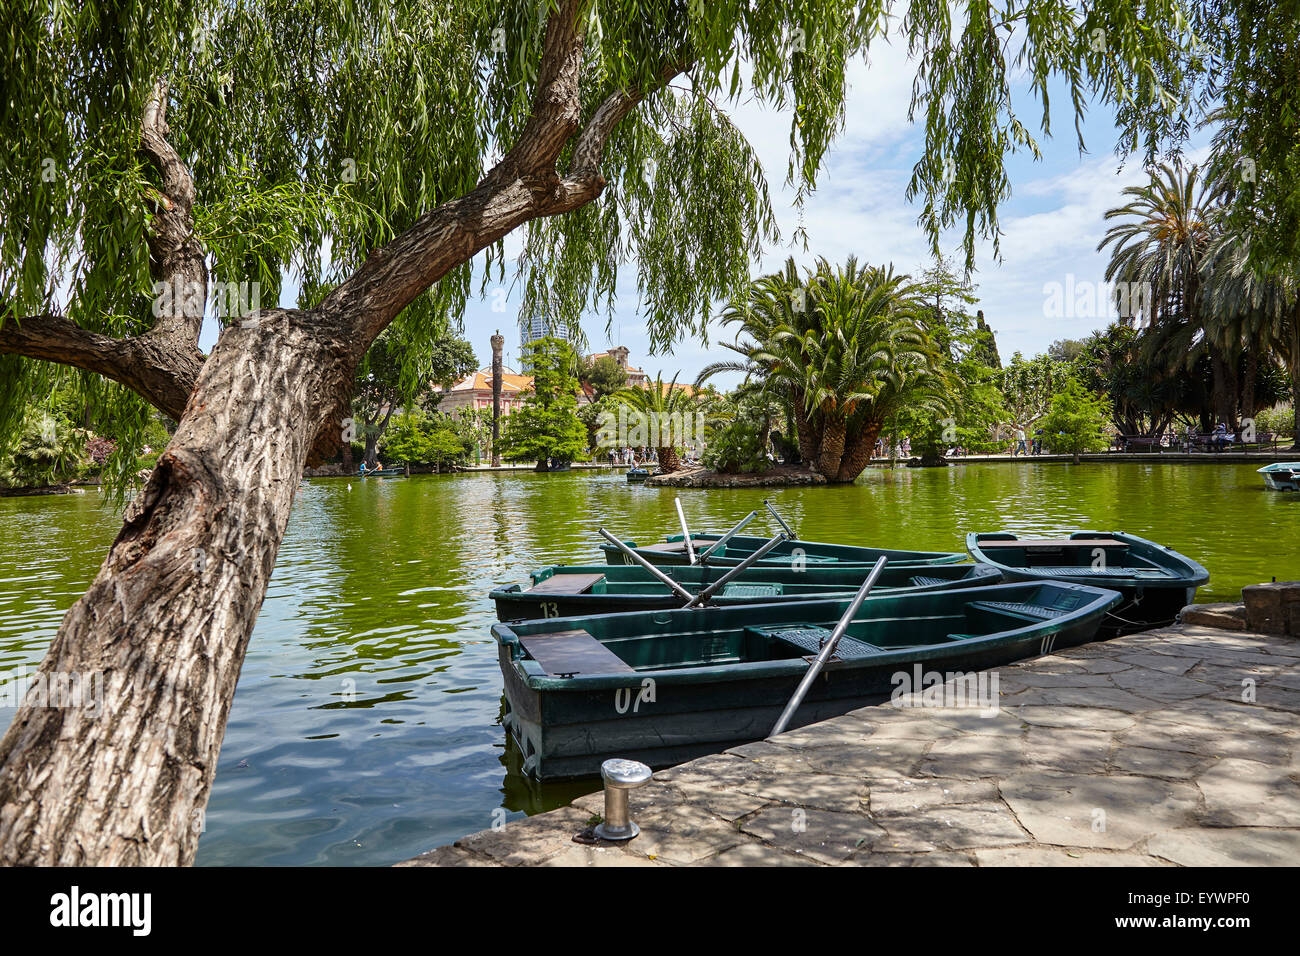 Parc de la Ciutadella, Barcelona, Catalonia, Spain, Europe - Stock Image